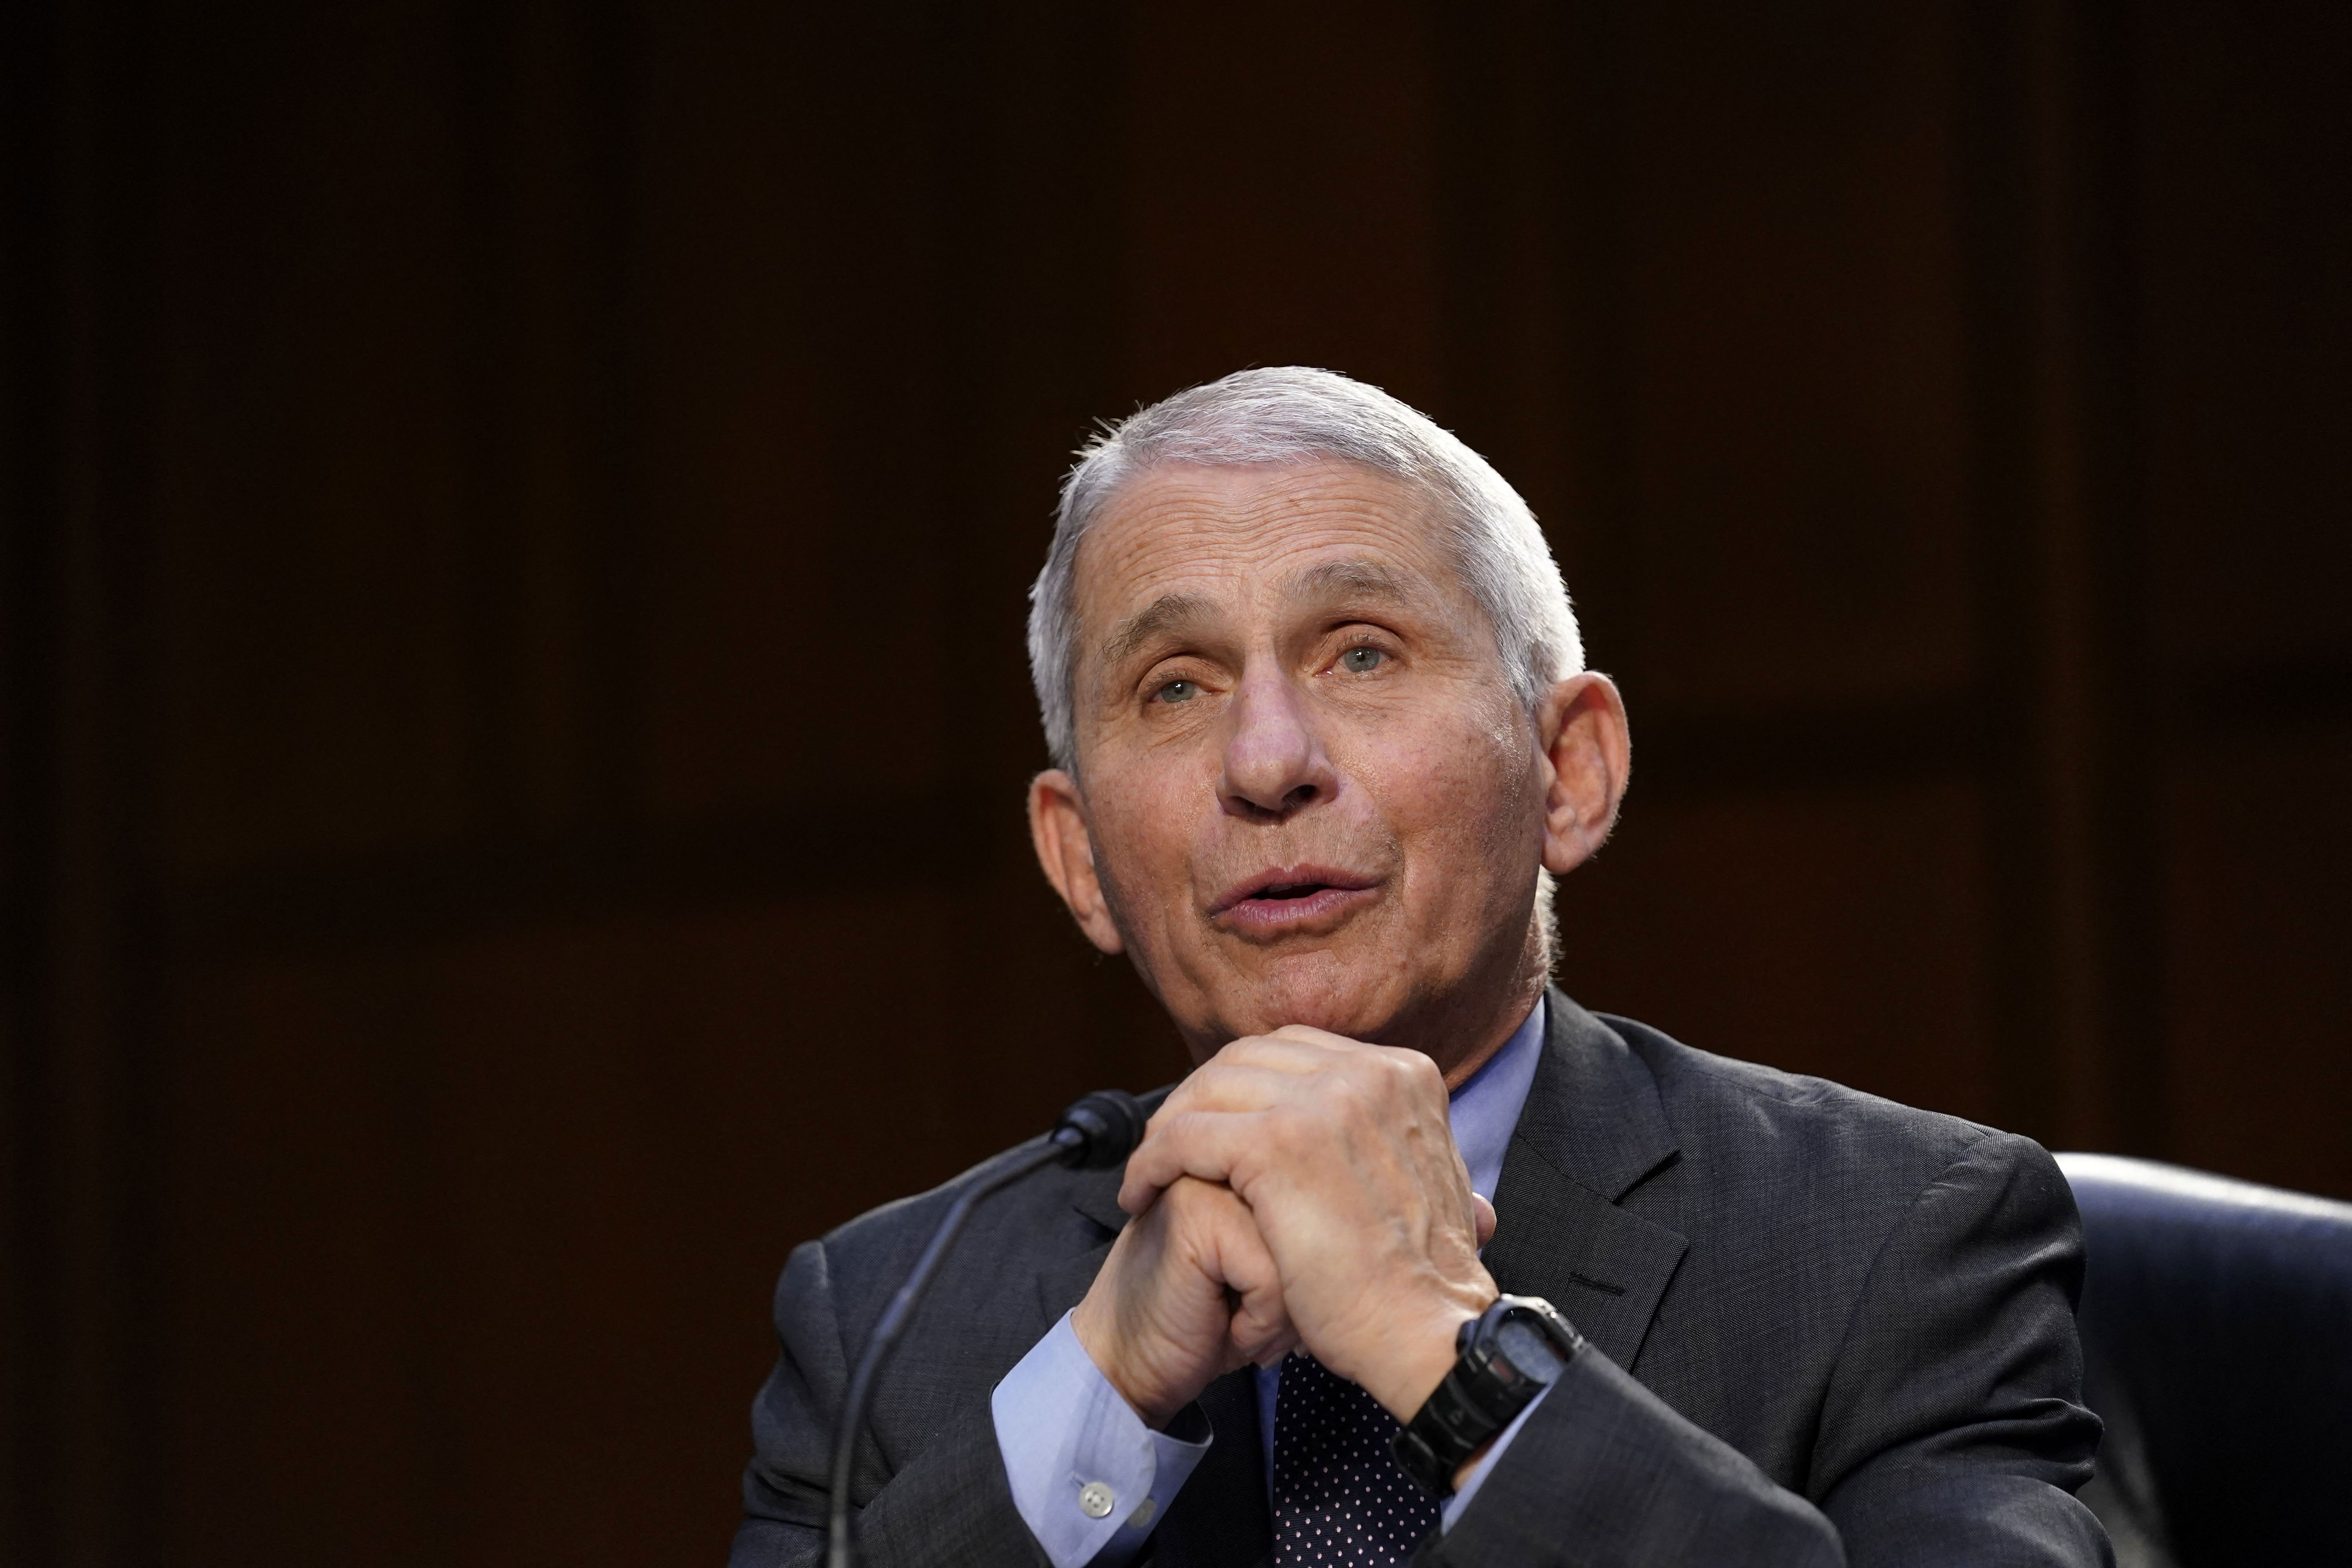 Dr. Anthony Fauci, director of the National Institute of Allergy and Infectious Diseases, testifies in Washington, DC, on March 18.